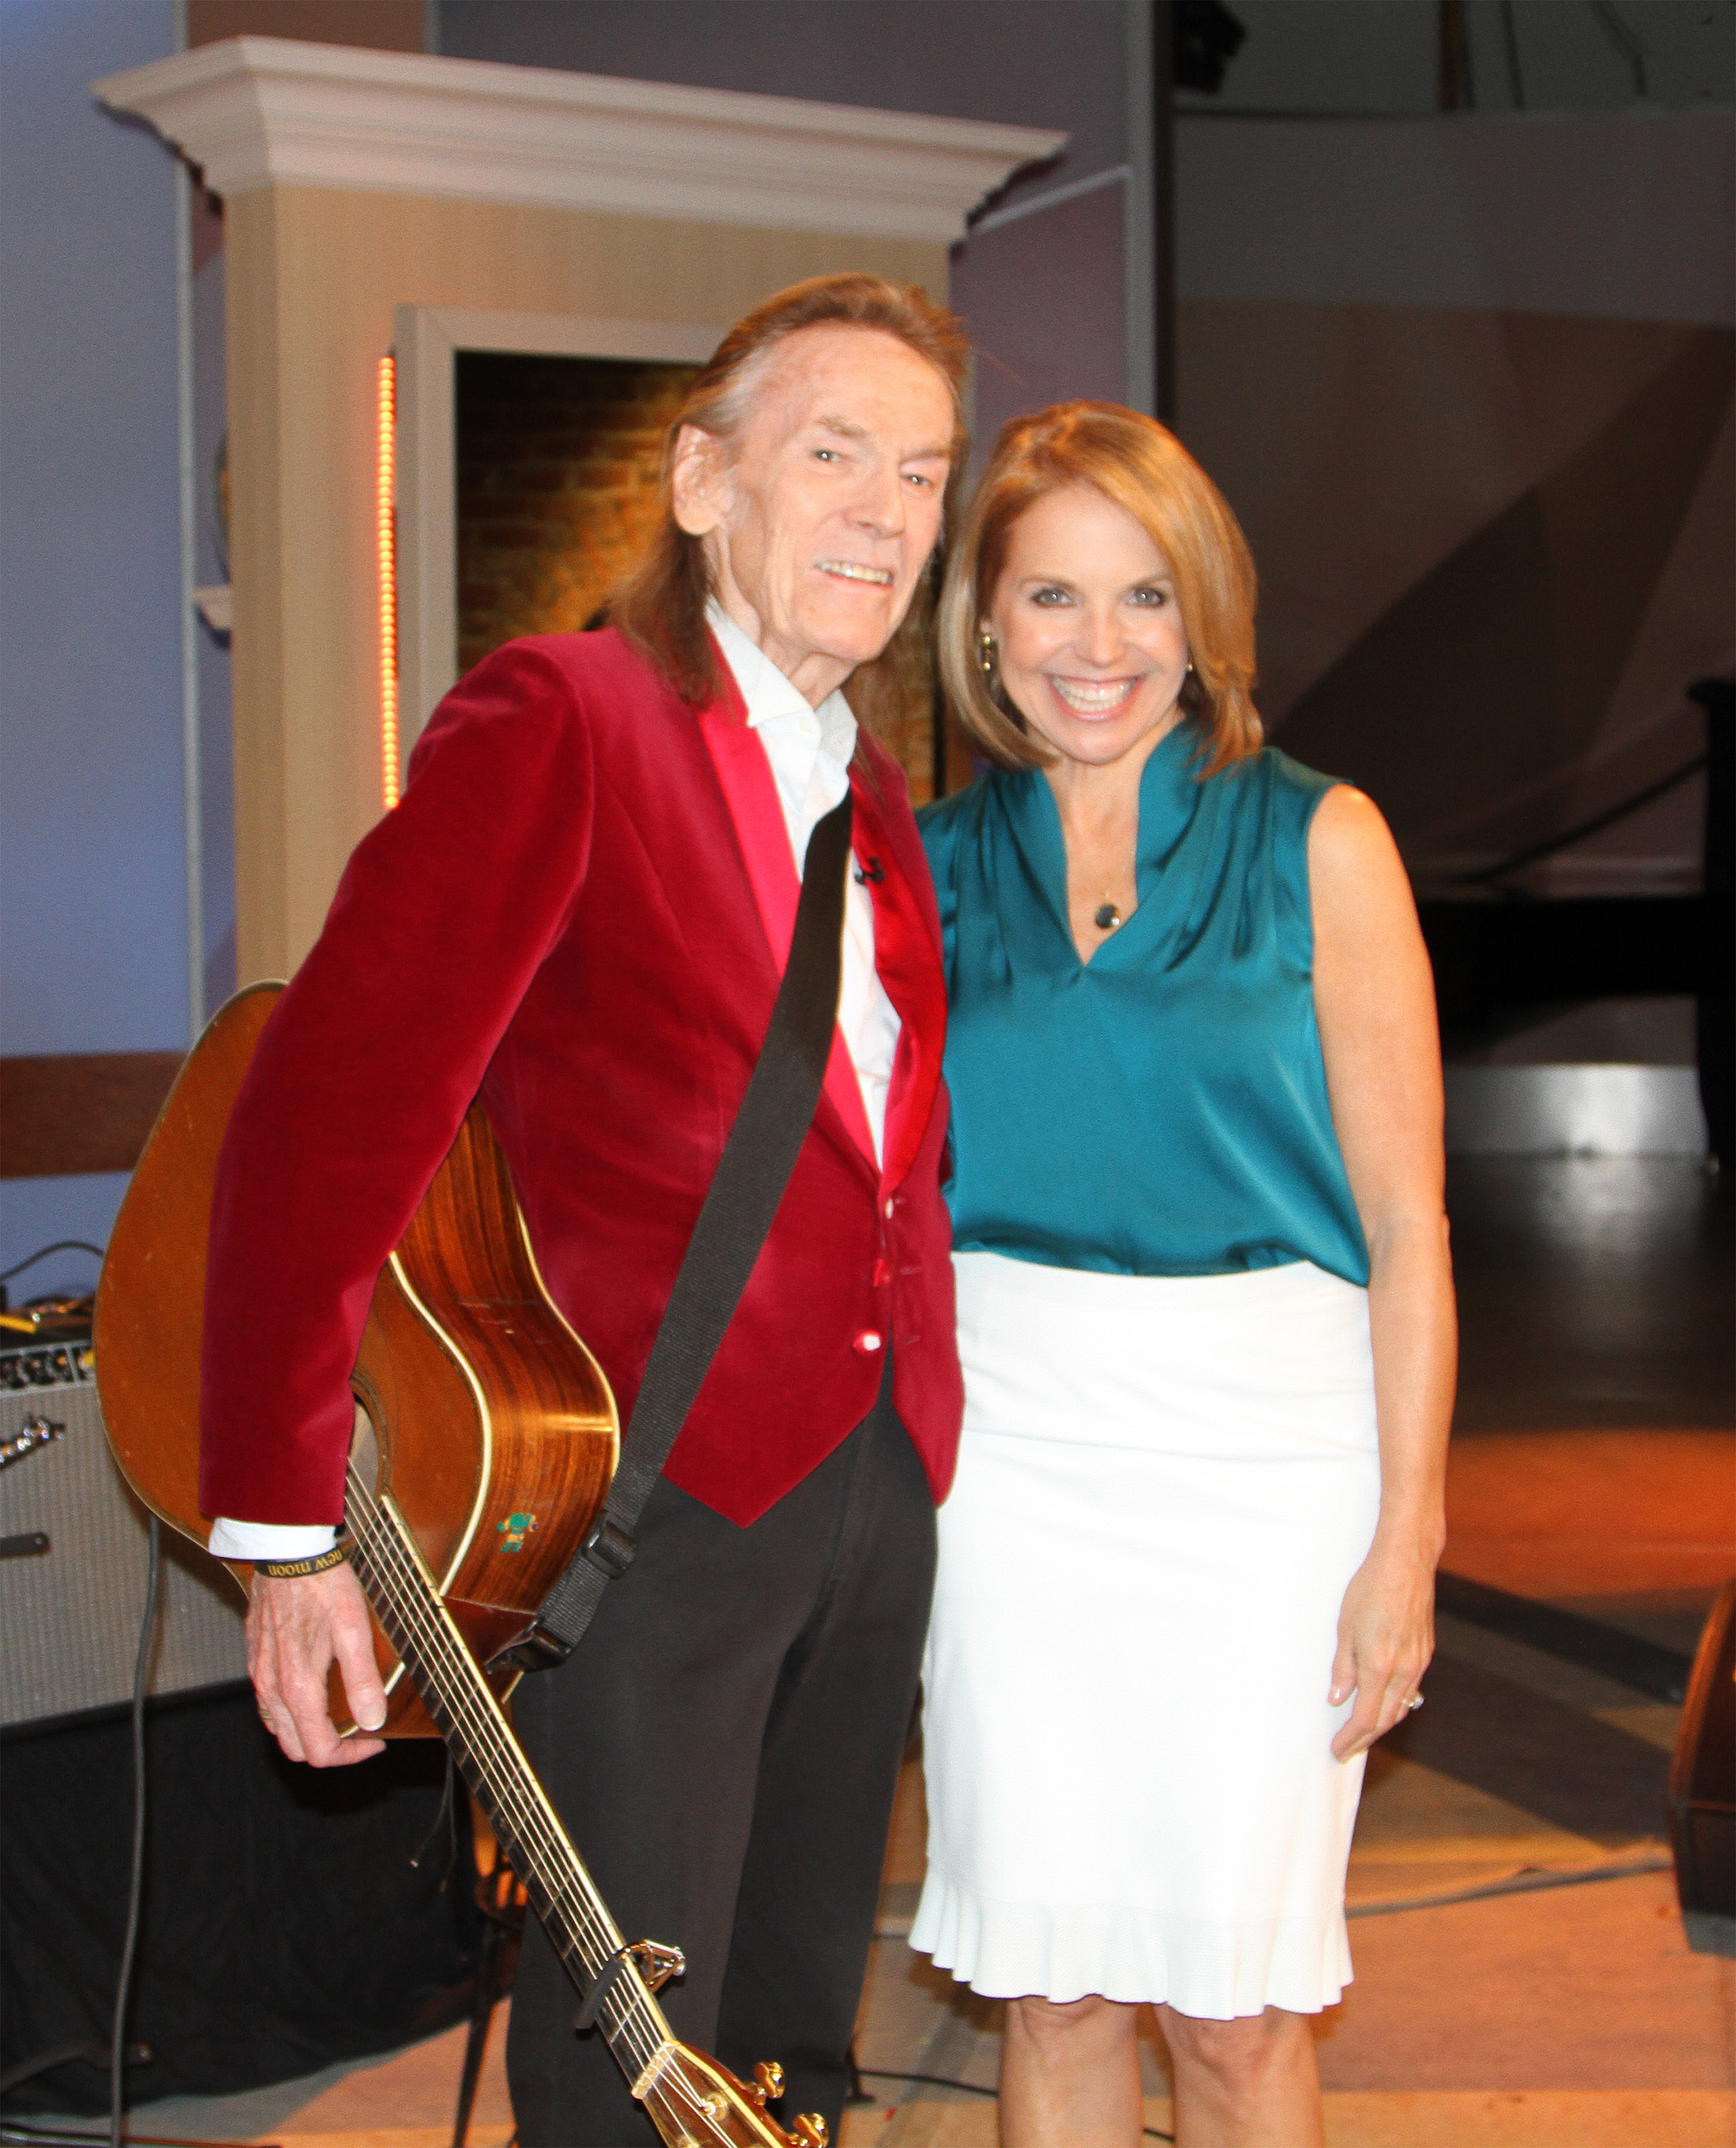 lightfoot dating Relationship dating details of cathy smith and gordon lightfoot and all the other celebrities they've hooked up with.